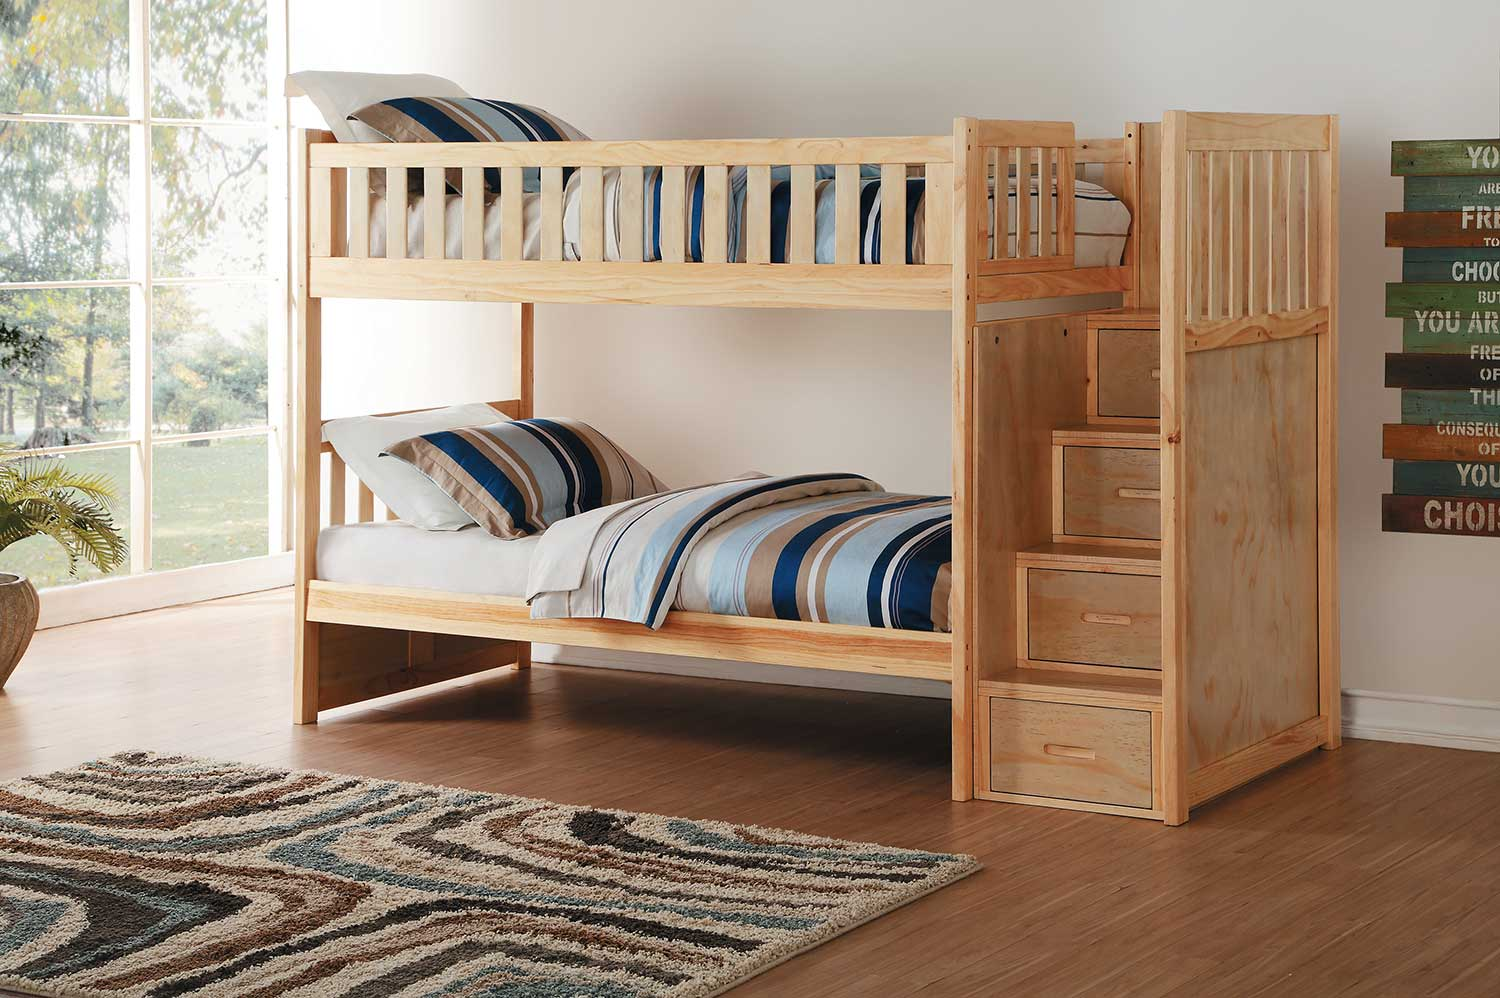 Homelegance Bartly Twin over Twin Bunk Bed with Step Storage - Natural Pine